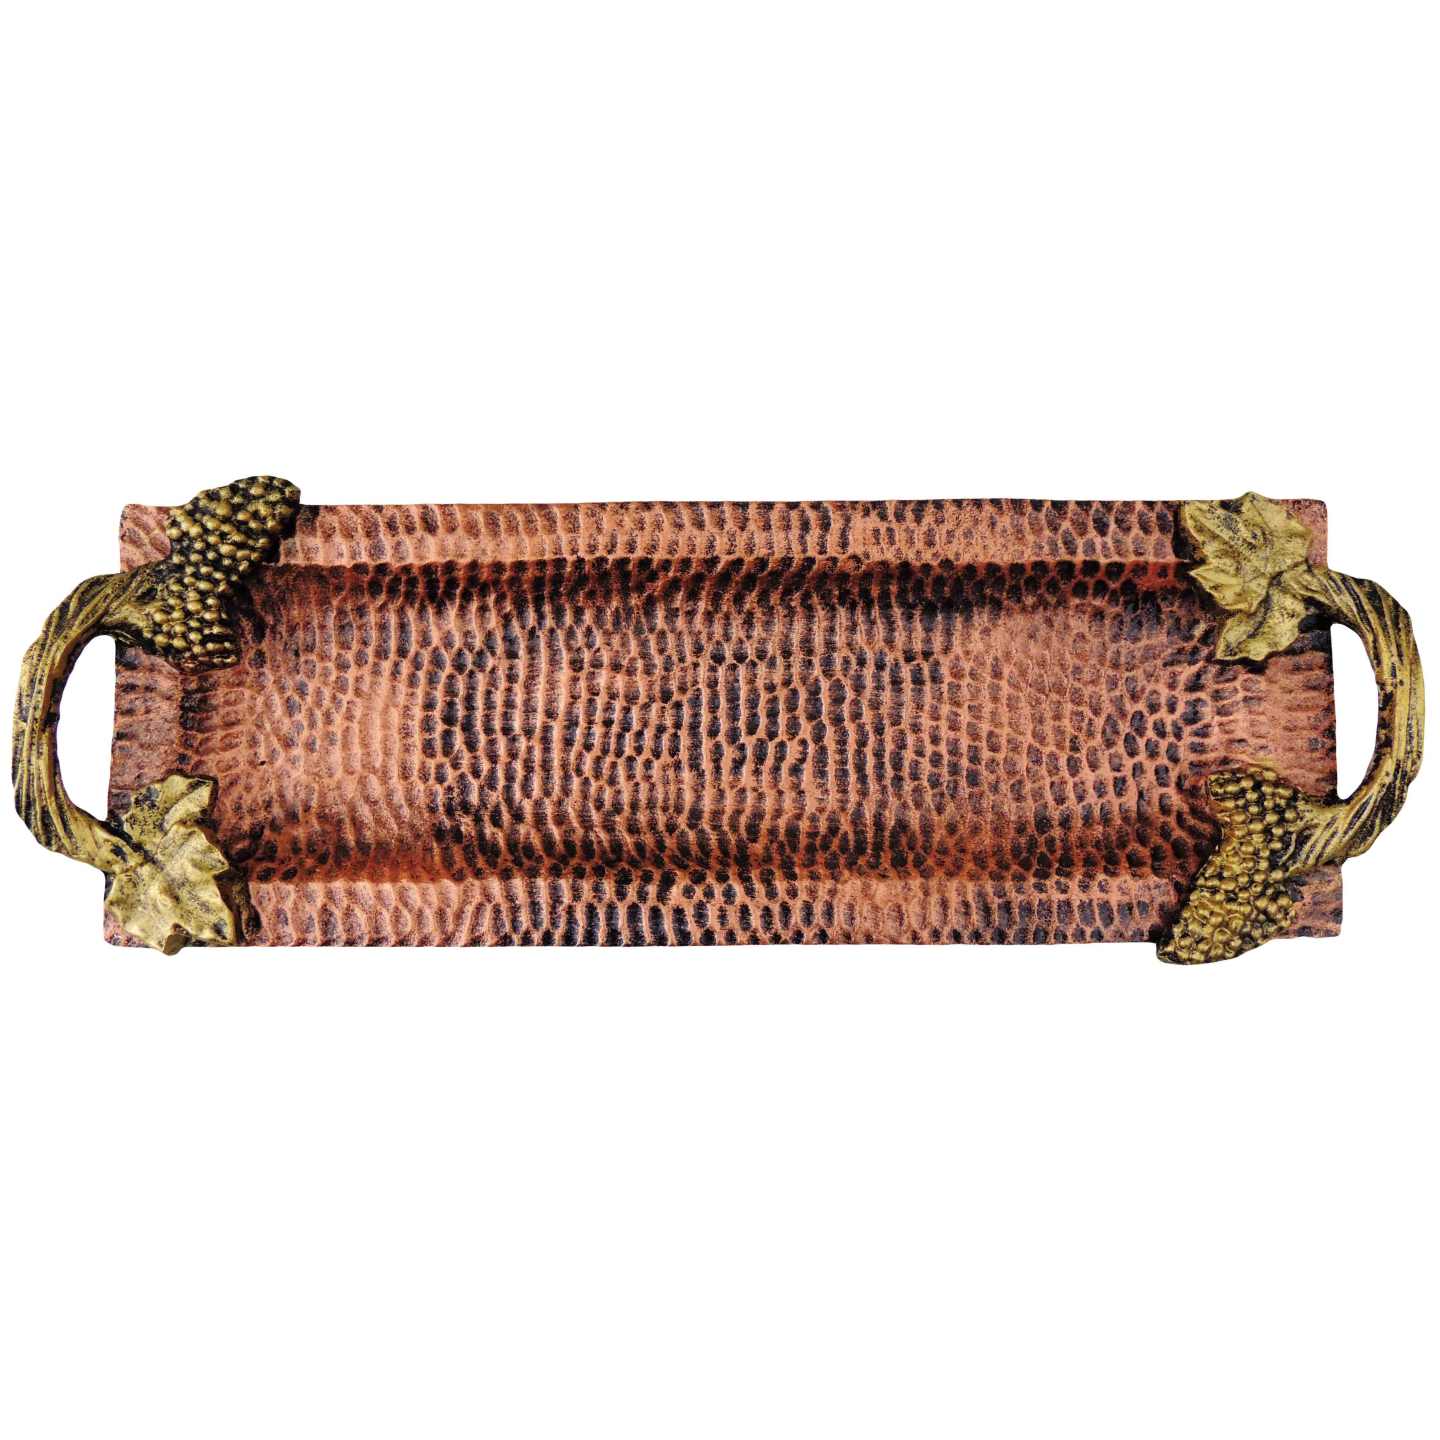 Aluminium Metal Tray Serving Platter Hammered Copper finish- 17*6 Inch  (A1611/17)